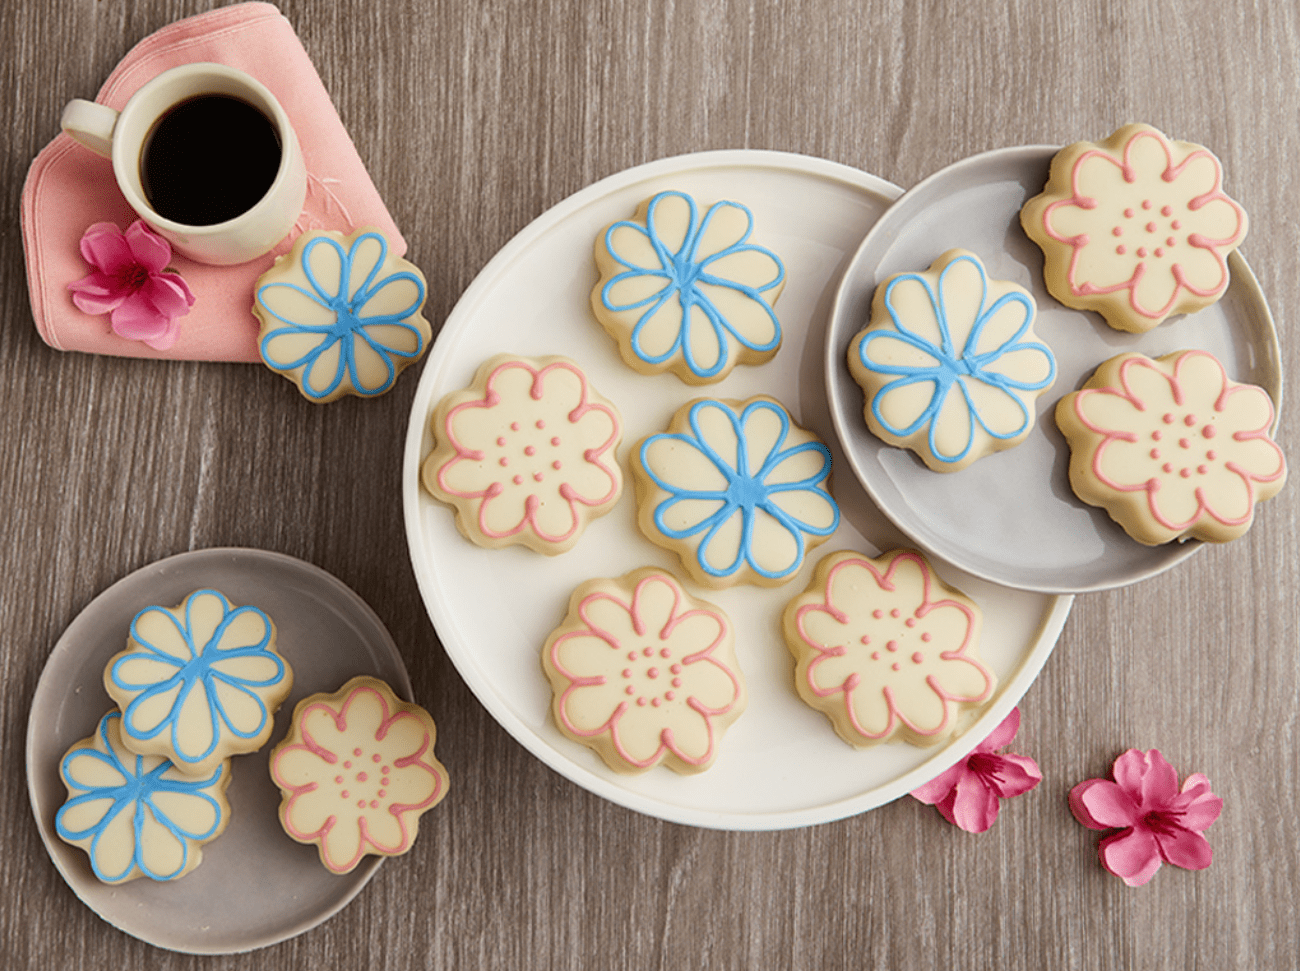 Bake Me a Wish Flower Cookies